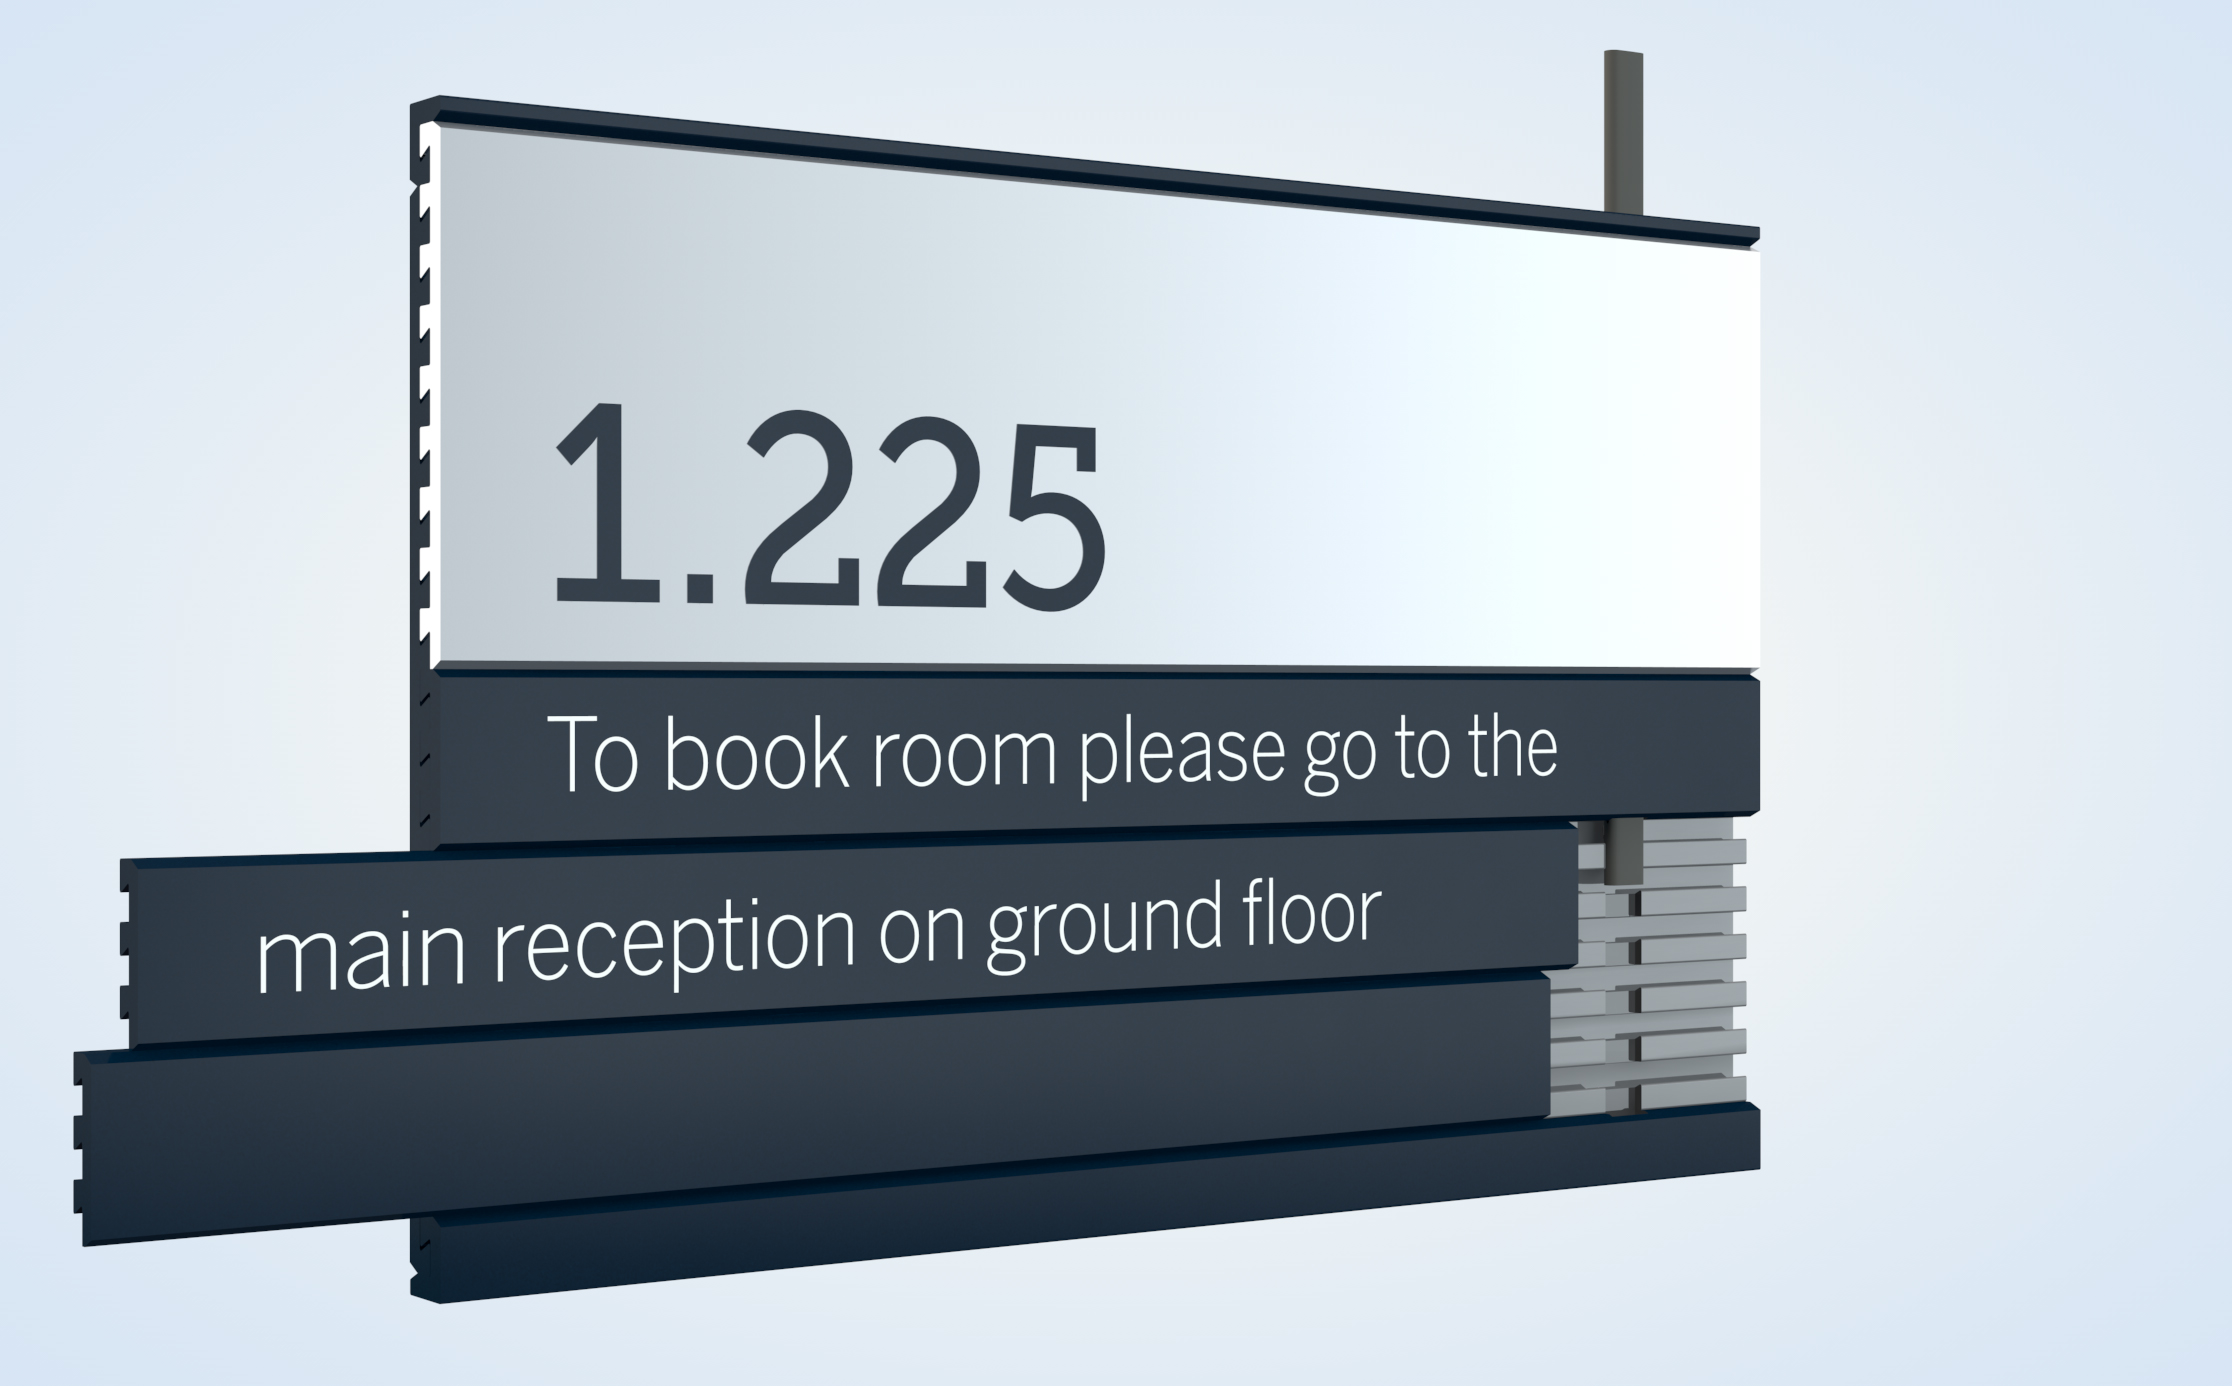 Wayfinding Requirements